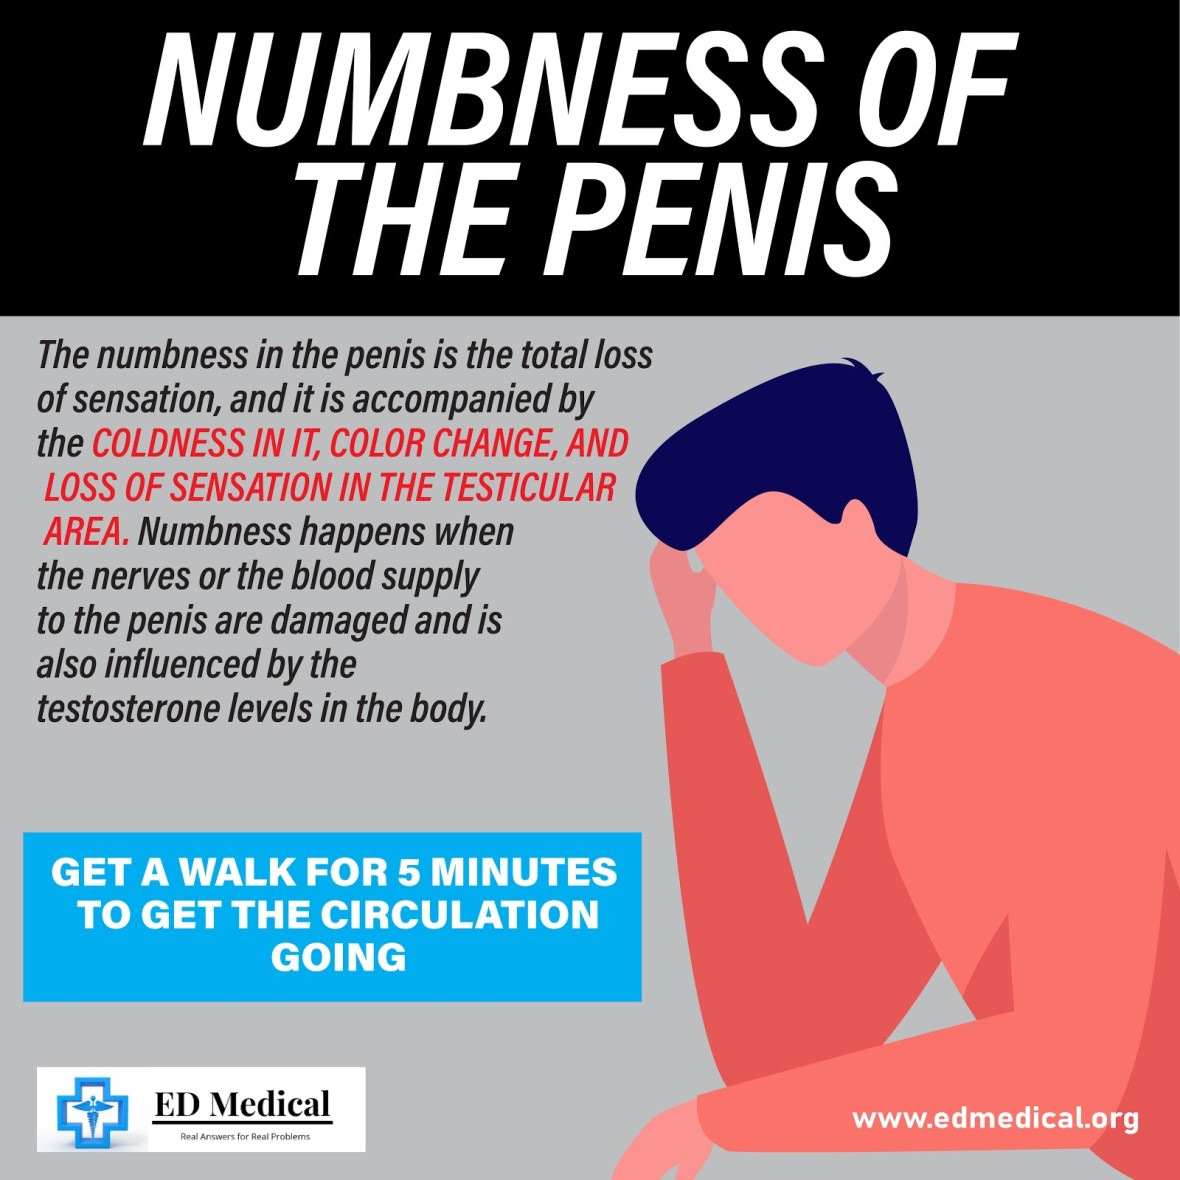 Numbness of the penis